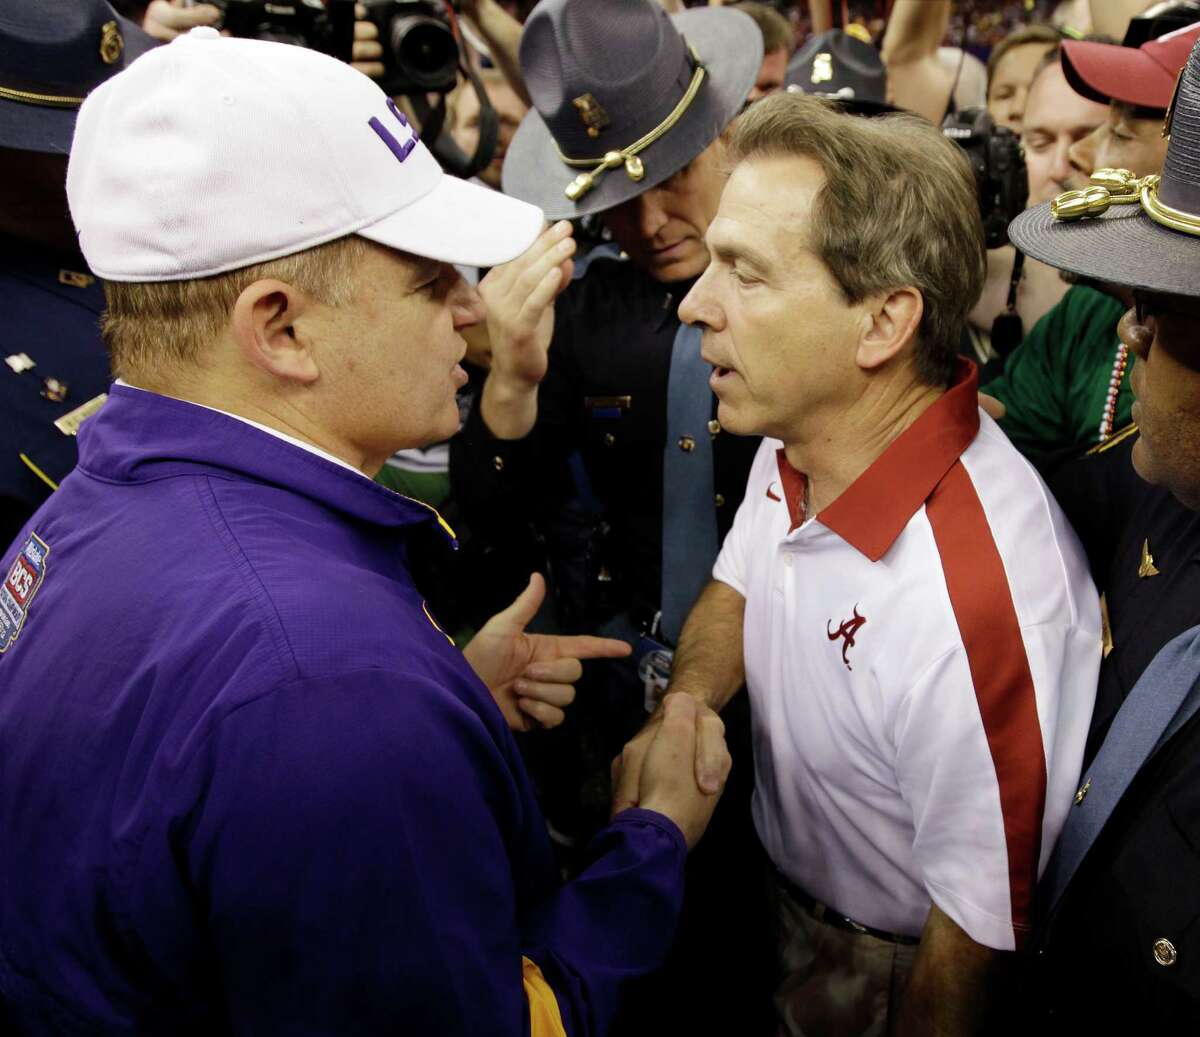 FILE - In this Jan. 9, 2012, file photo, LSU head coach Les Miles, left, talks to Alabama head coach Nick Saban after the Crimson Tide won 21-0 in the BCS National Championship NCAA college football game in New Orleans. Alabama-LSU has become the greatest rivalry in college football, and it's time for another epic showdown: No. 1 Crimson Tide vs. No. 5 Tigers on Saturday. (AP Photo/David J. Phillip, File)